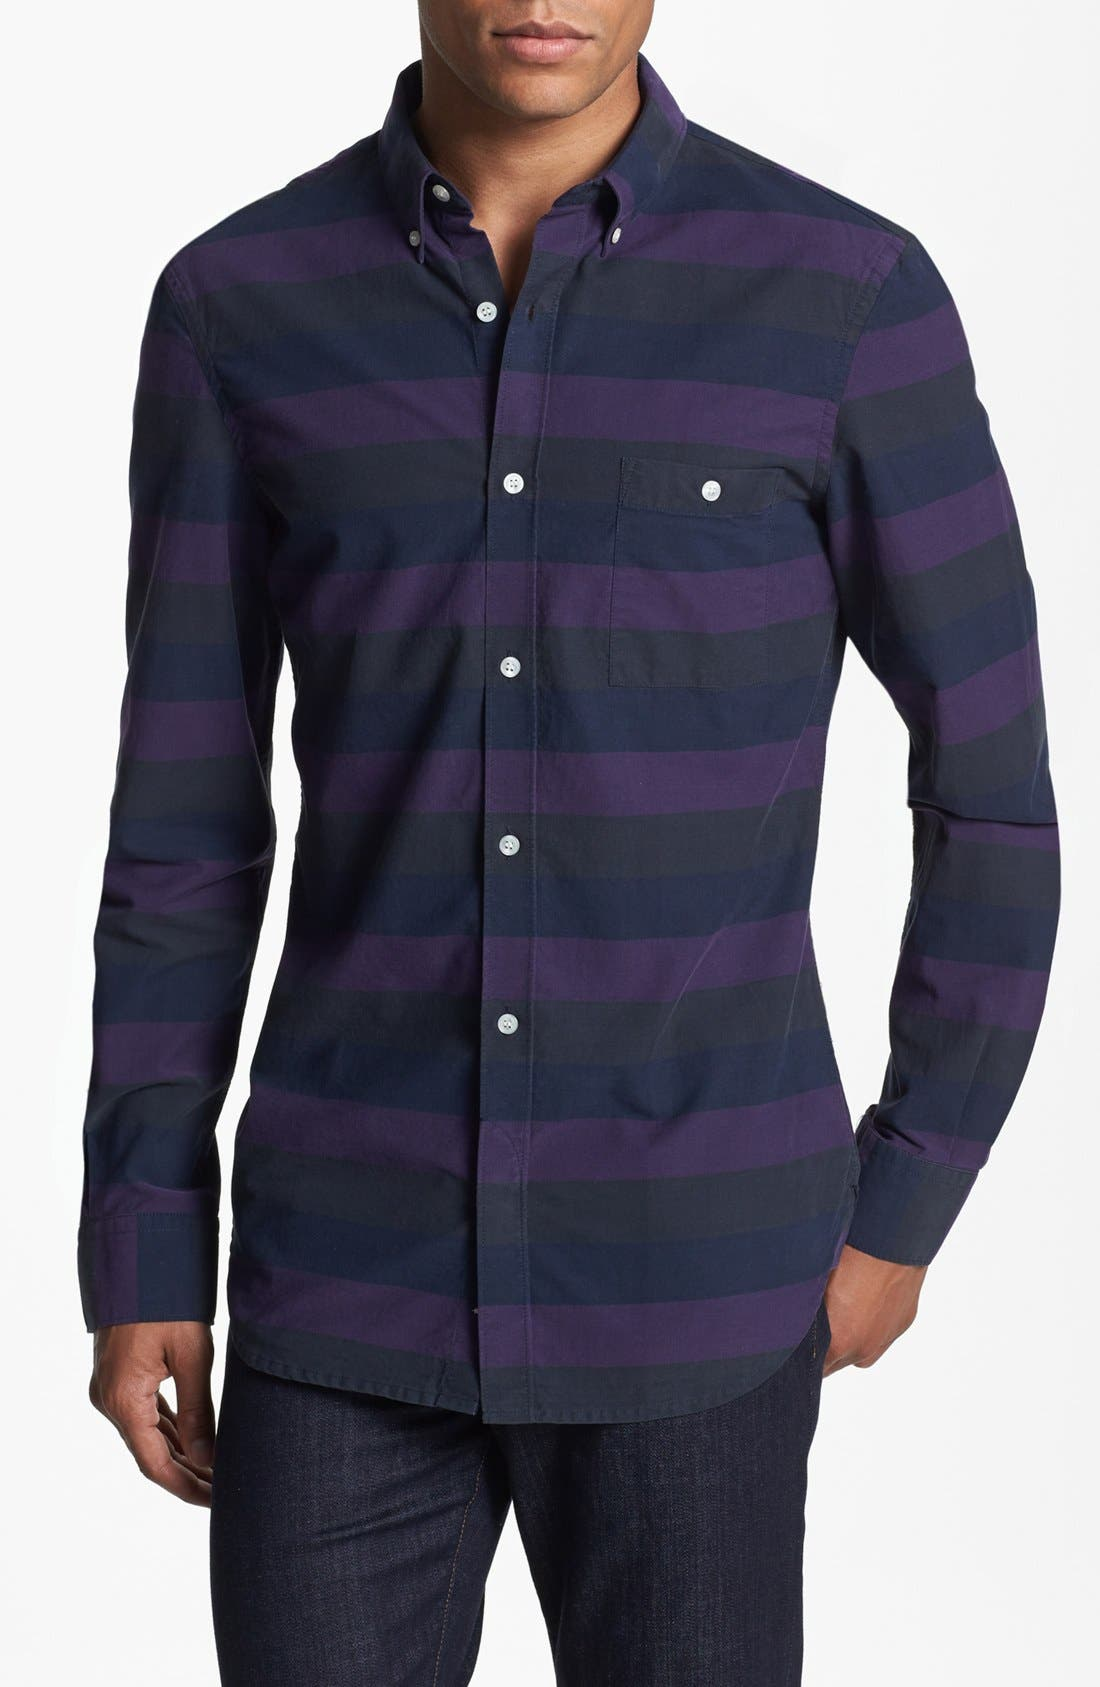 Alternate Image 1 Selected - French Connection 'Air Station' Sport Shirt